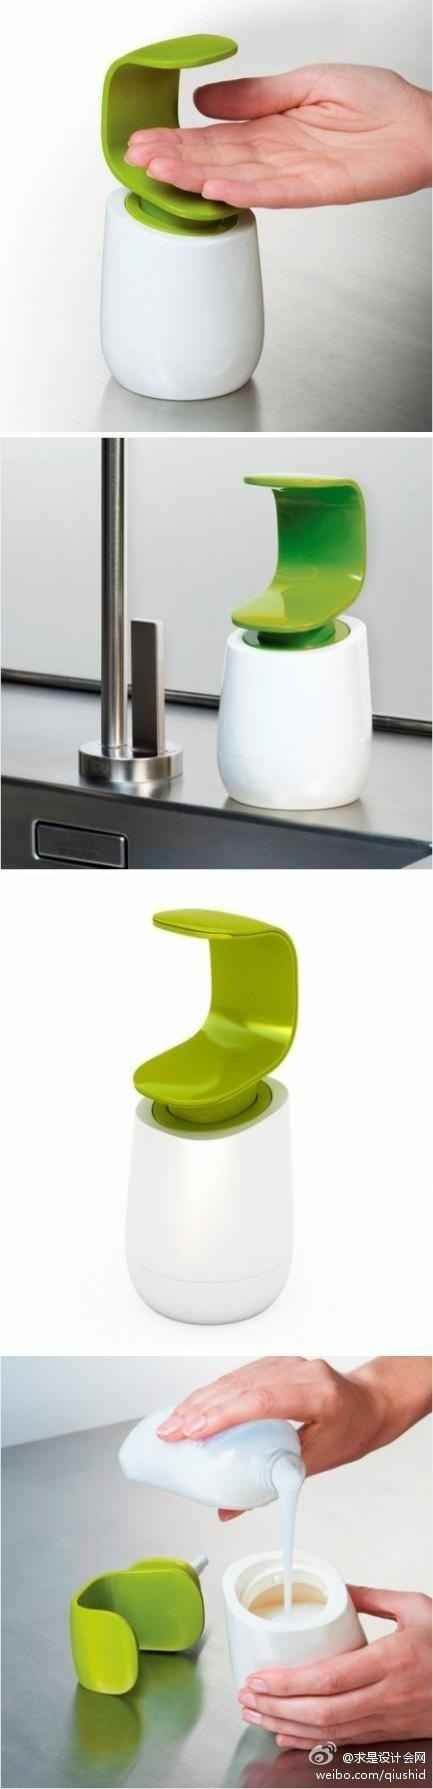 M s de 25 ideas fant sticas sobre dispensador de jab n de - Dispensador jabon cocina ...